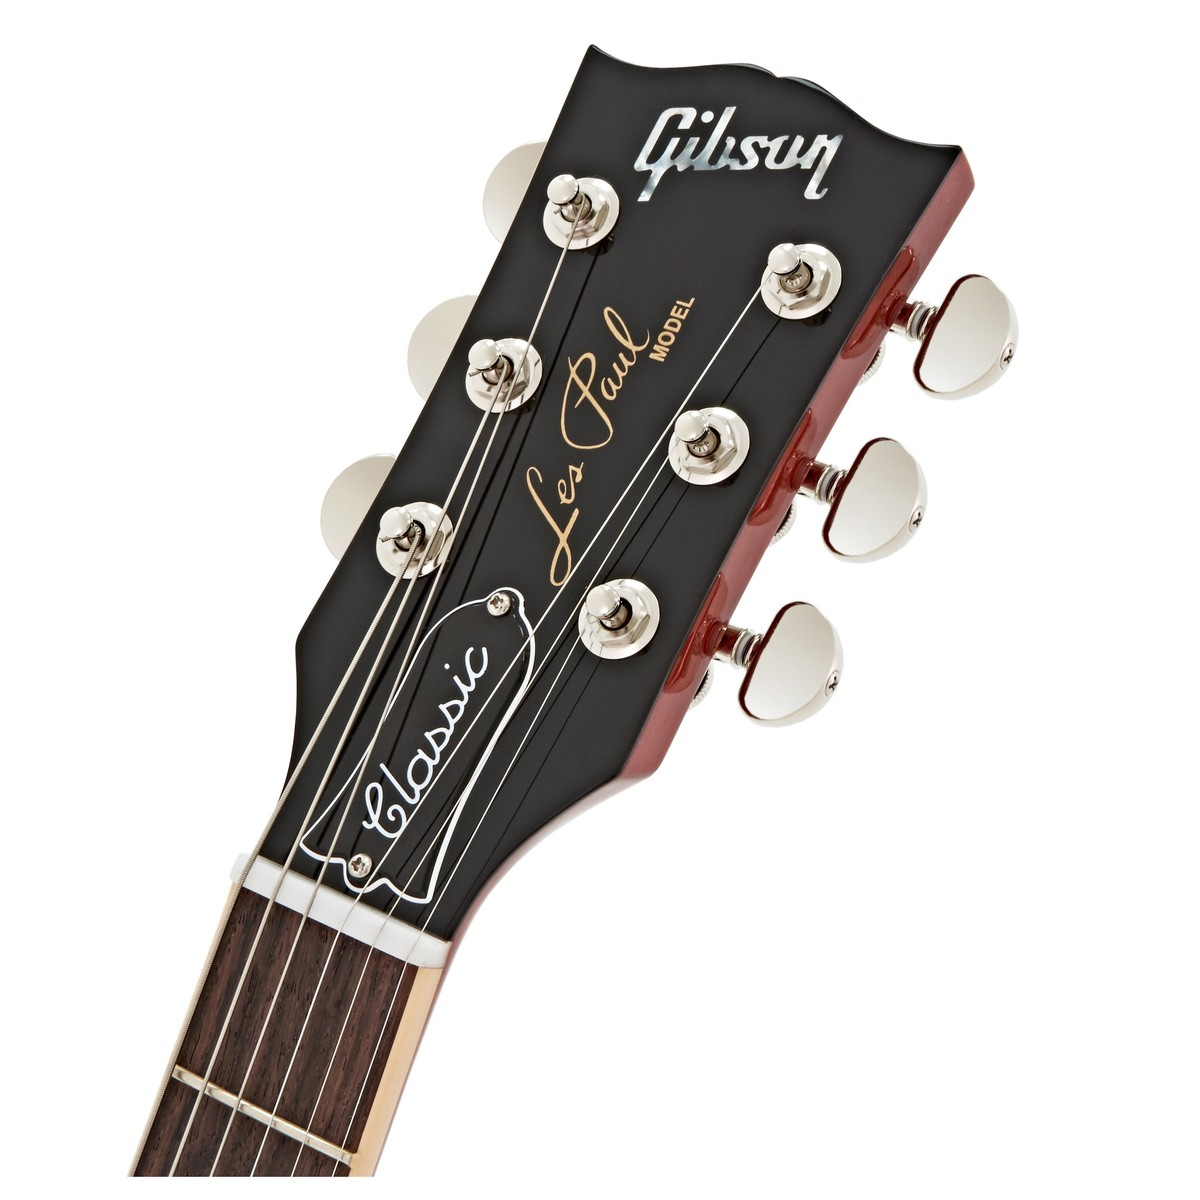 Gibson Les Paul Classic T 2017 Cherry Sunburst At Gear4music Toggle Switch Wiring Electric Guitar Loading Zoom